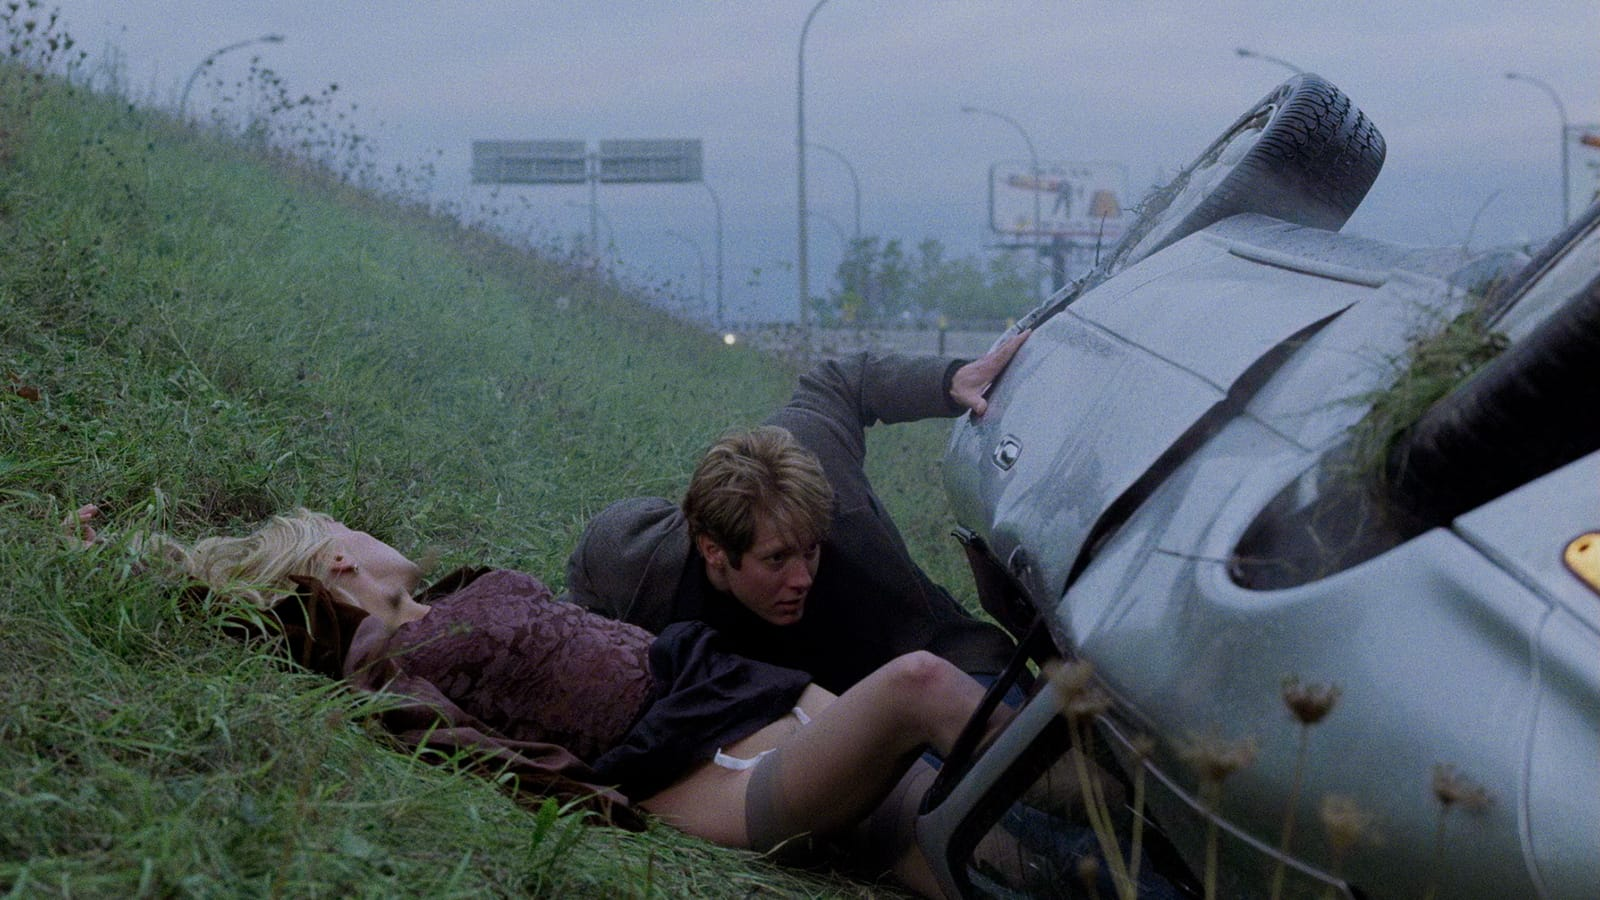 David Cronenberg's 'Crash' Joins the Criterion Collection in December